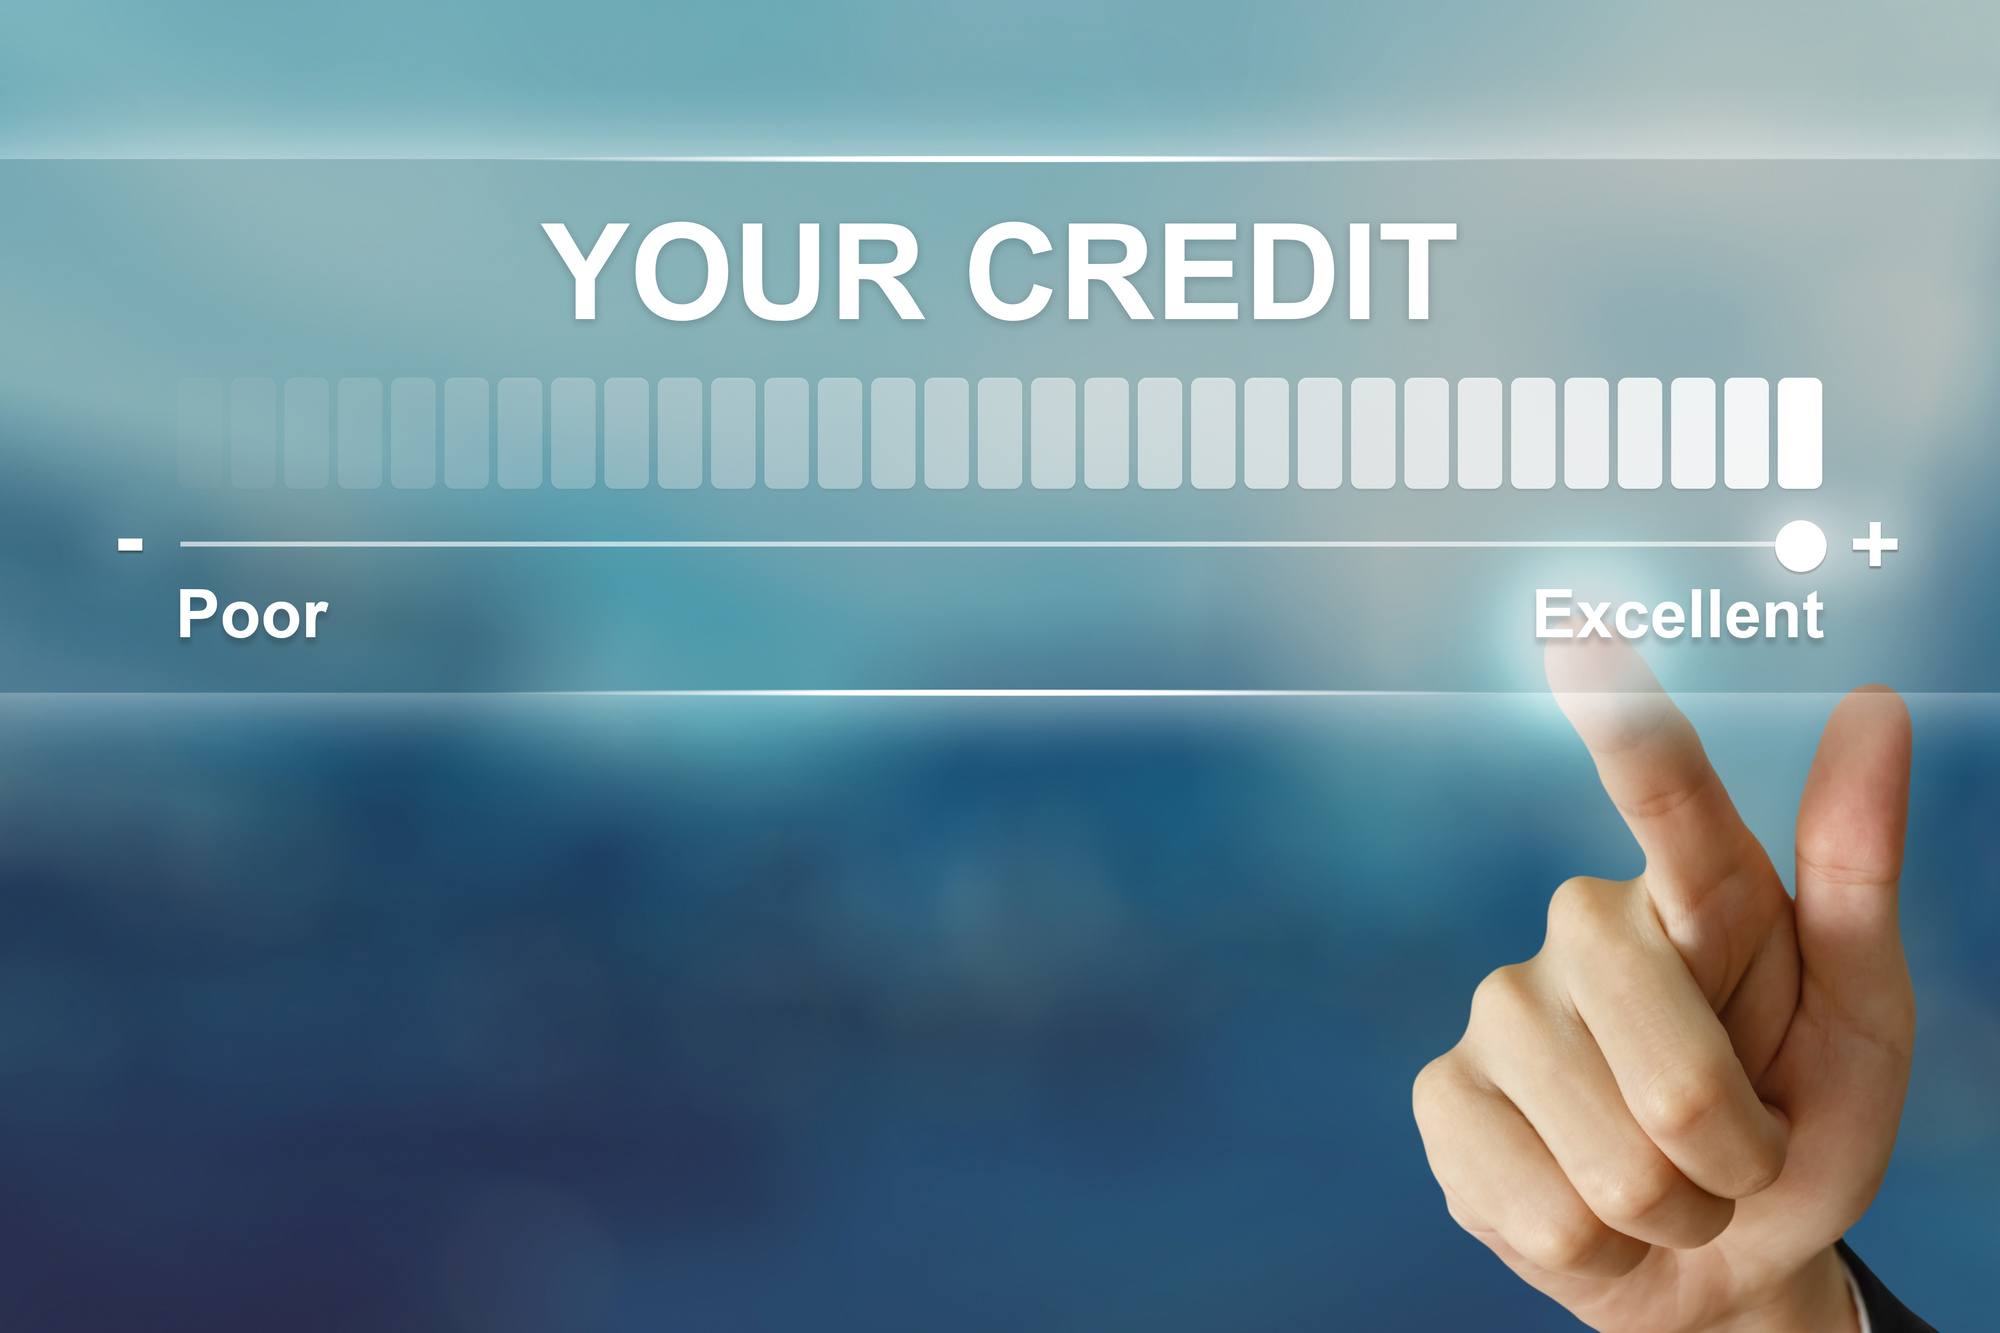 What Are the Major Credit Reporting Agencies and What Do They Do?